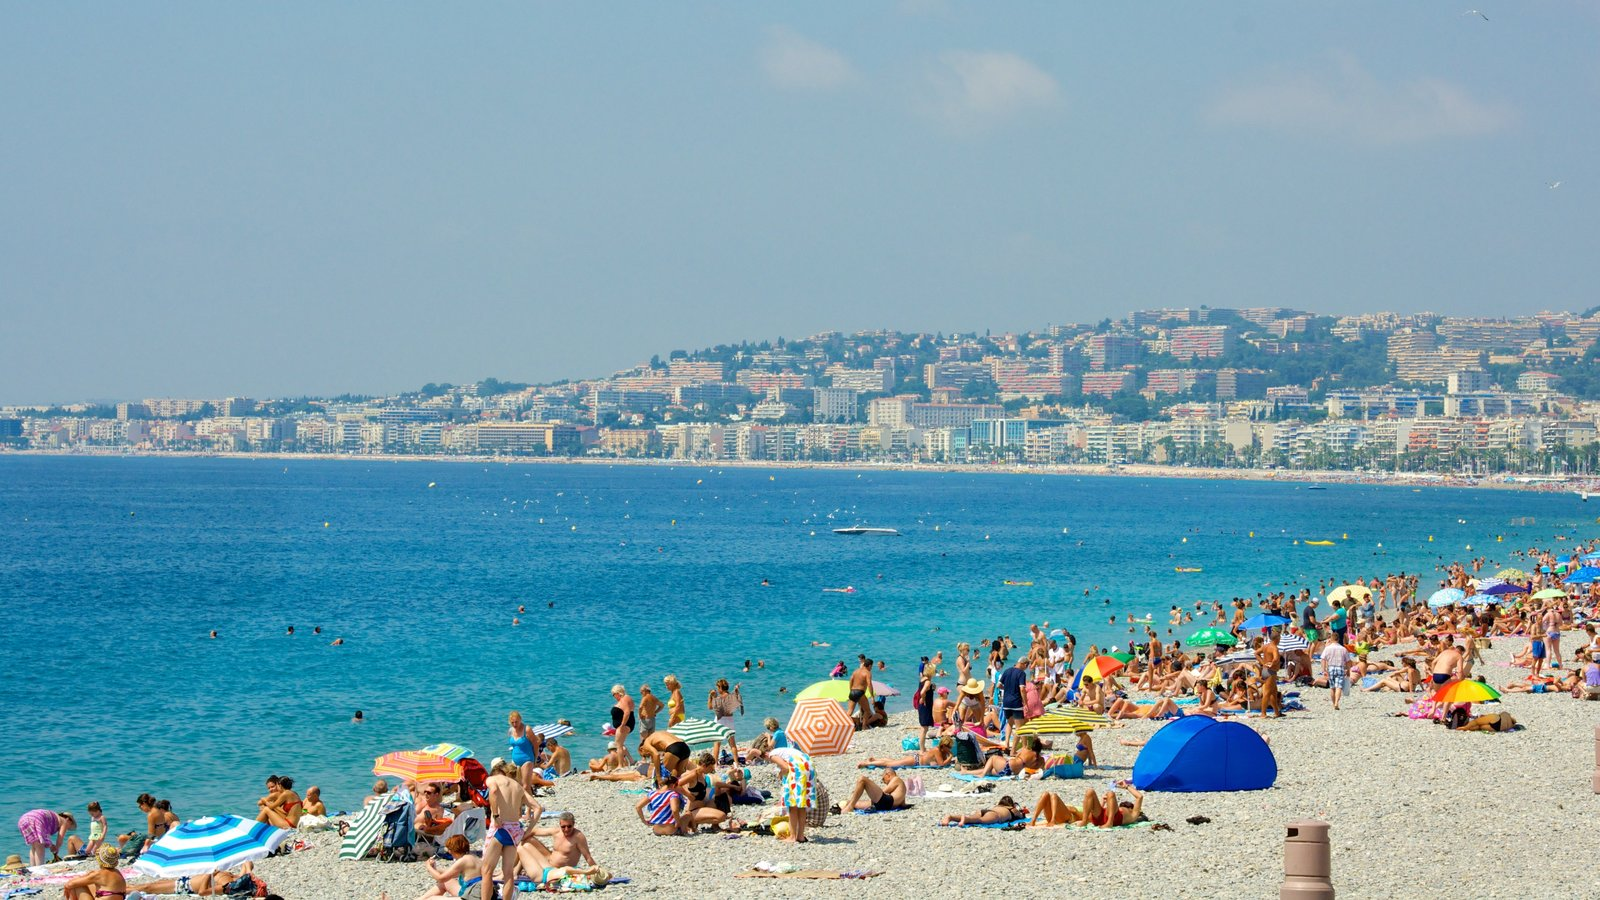 Nice Featuring A Coastal Town And Sandy Beach As Well Large Group Of